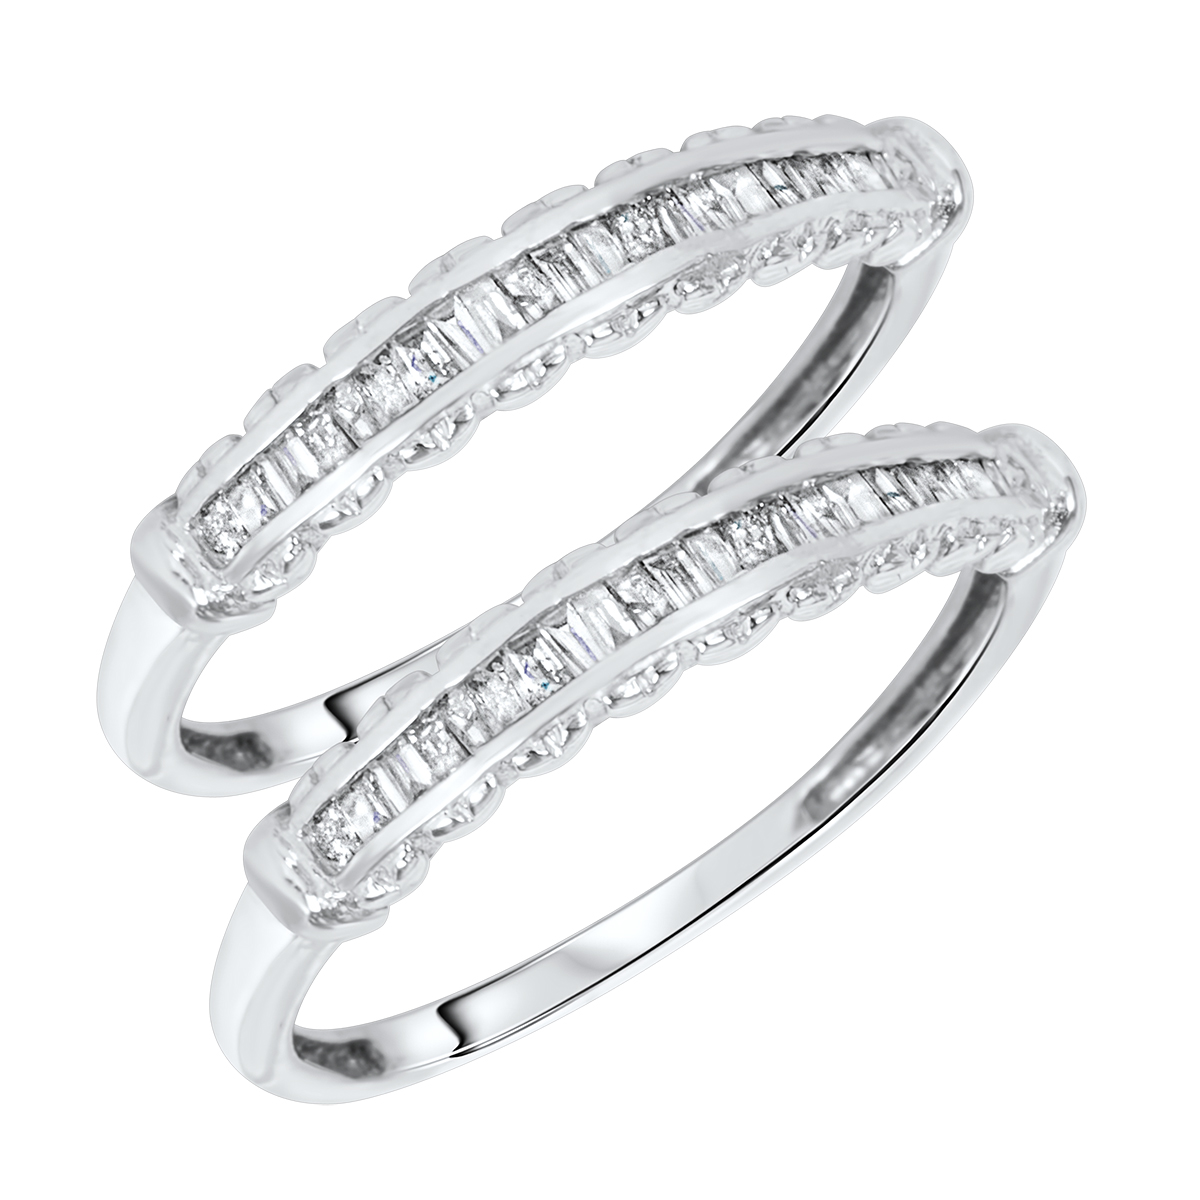 1/2 Carat T.W. Baguette Cut Ladies Same Sex Wedding Band Set 14K White Gold